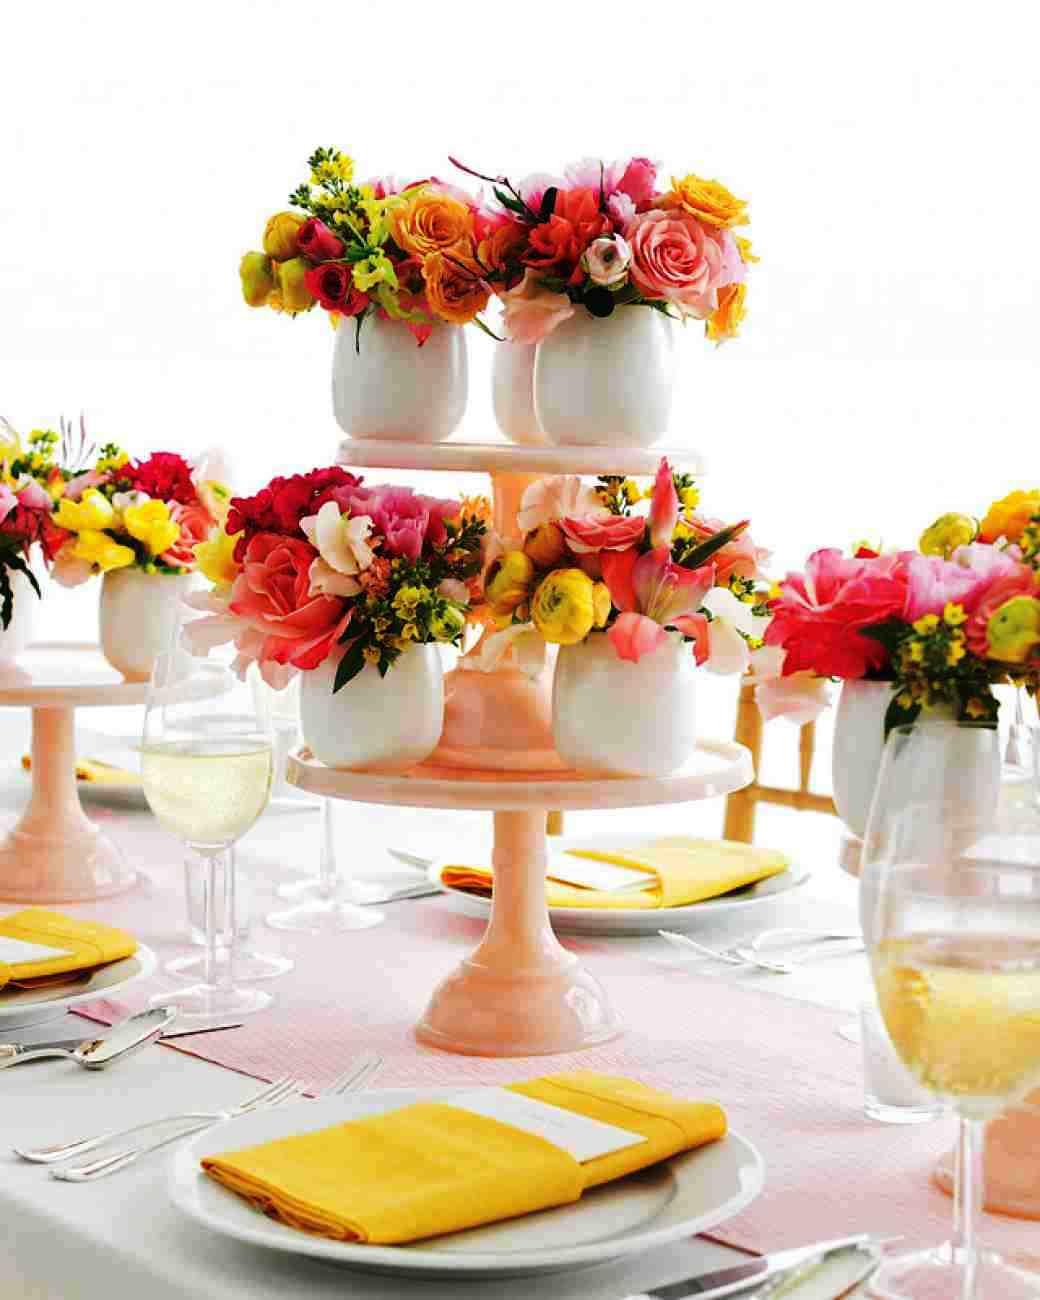 Simple Wedding Centerpieces Decorations Ideas